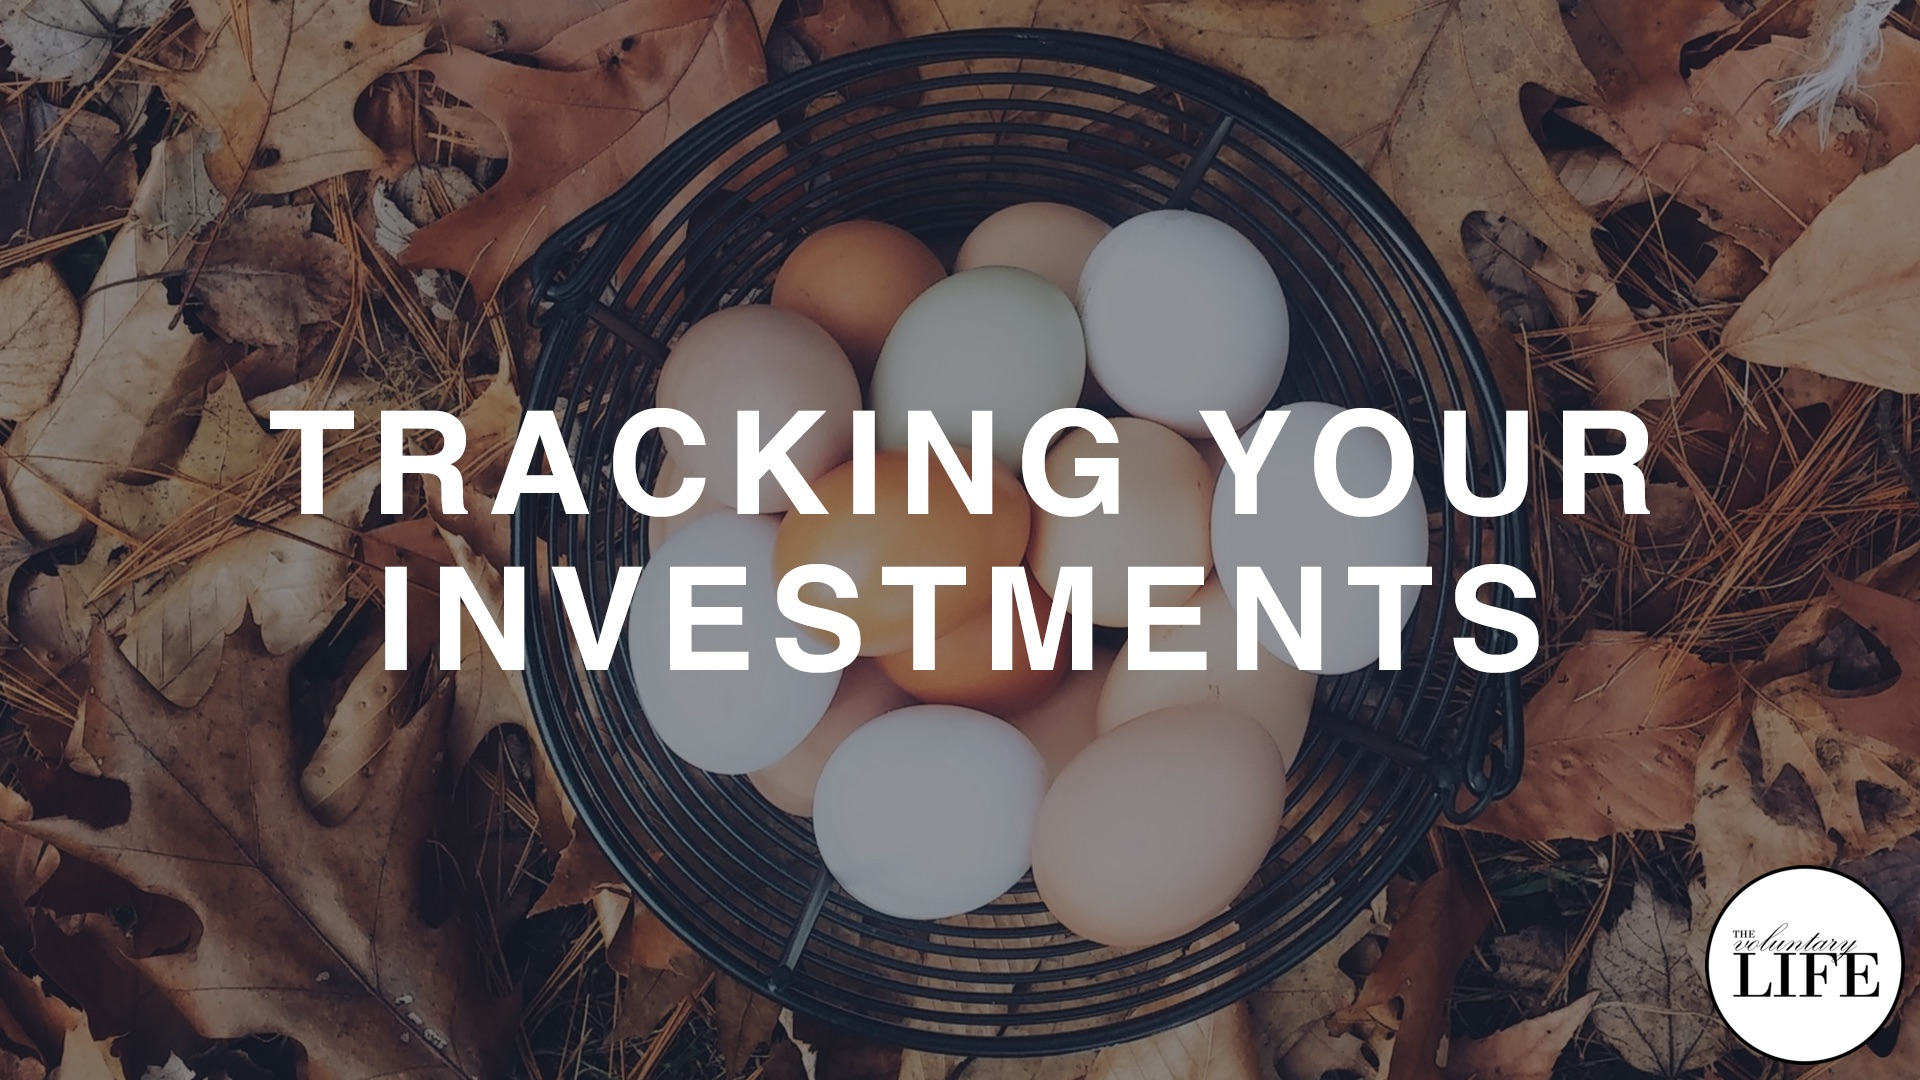 337 Tracking Your Investments